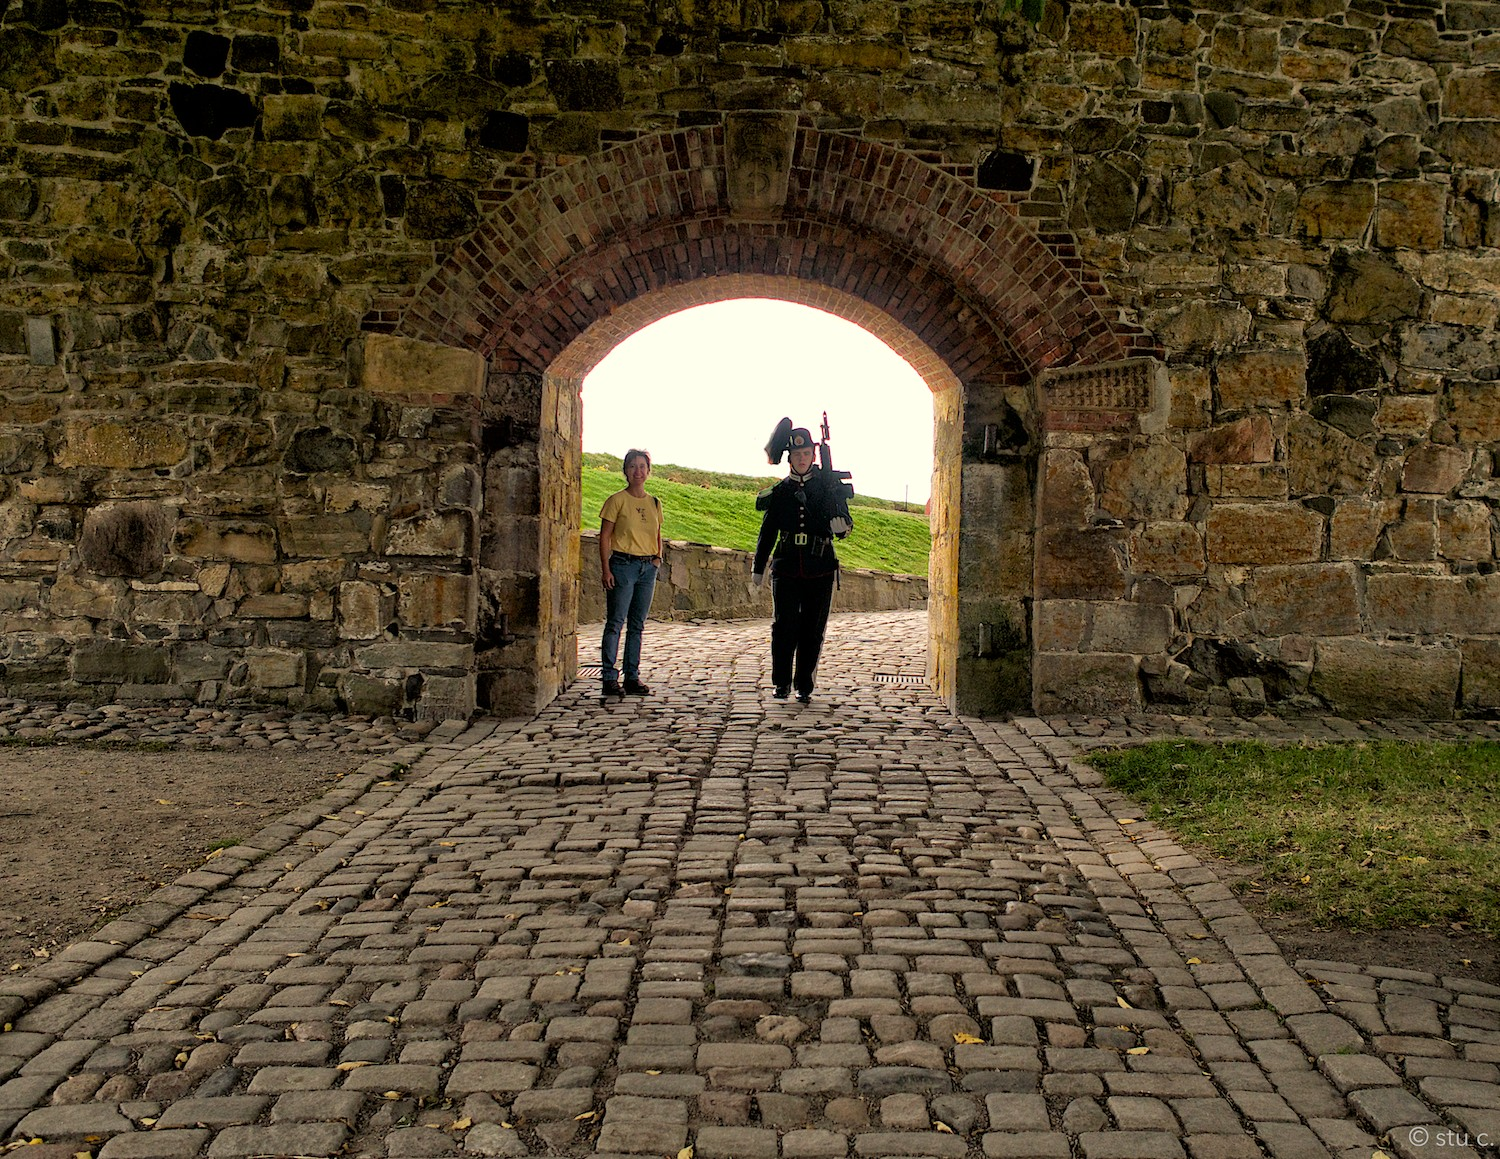 Fortress guards seem to be both ceremonial and functional, yet there's no separation between tourists and patrols.